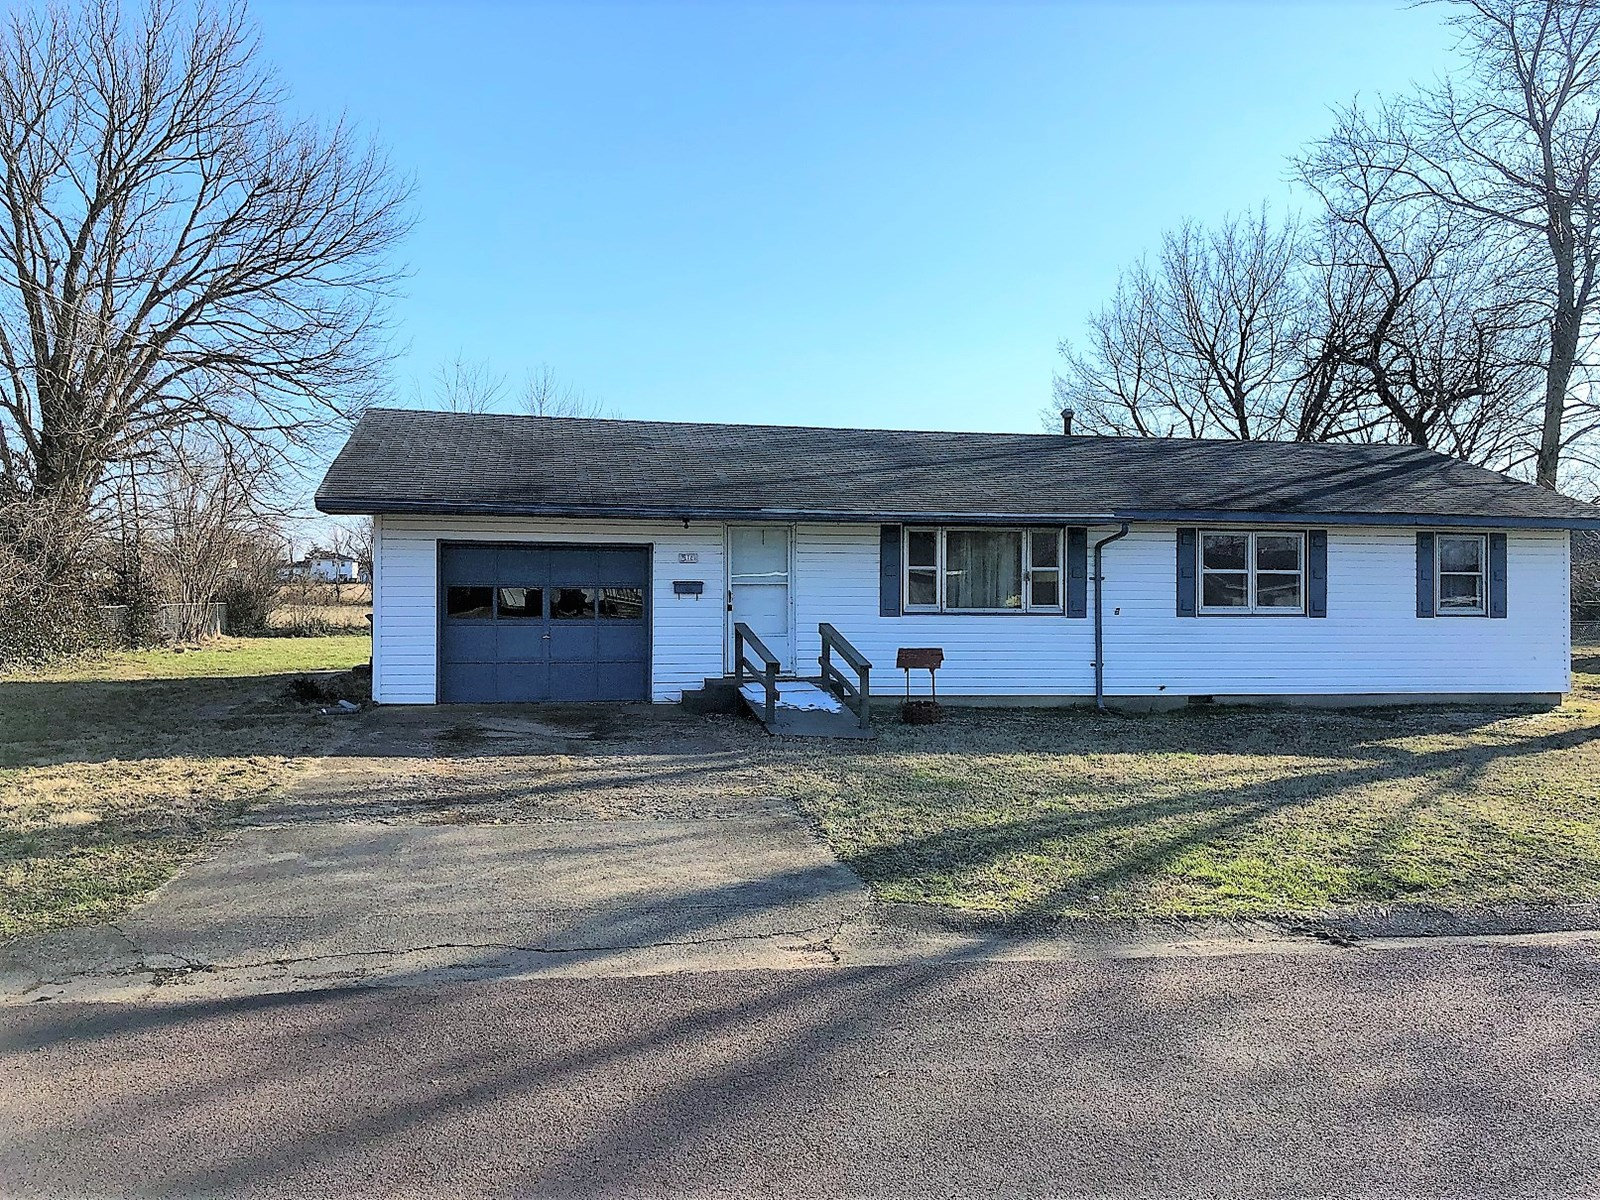 House for Sale in South Central Missouri Ozarks Town